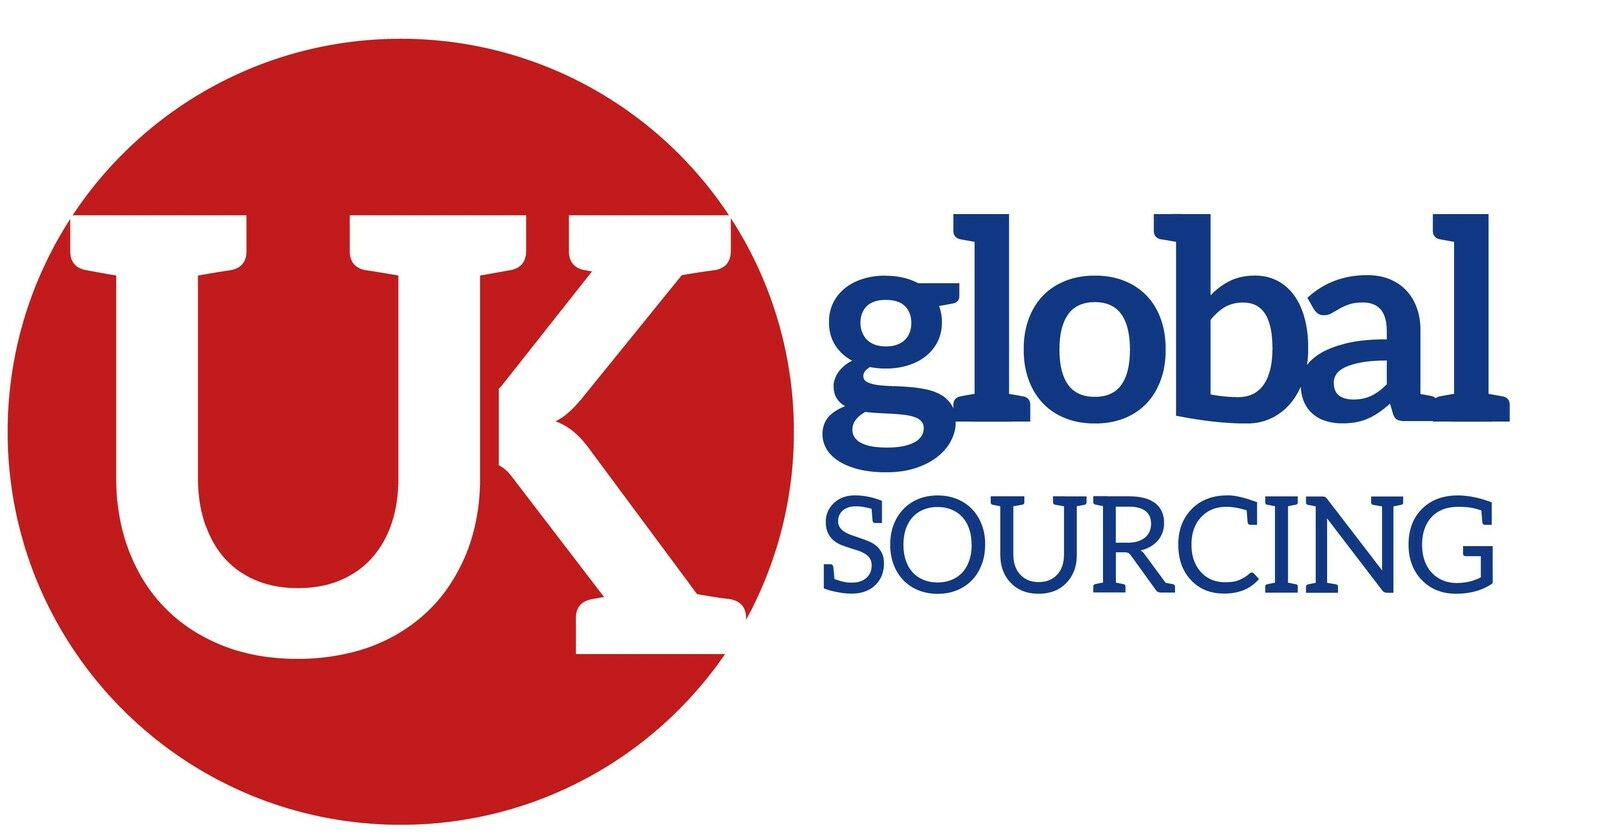 UK GLOBAL SOURCING LTD